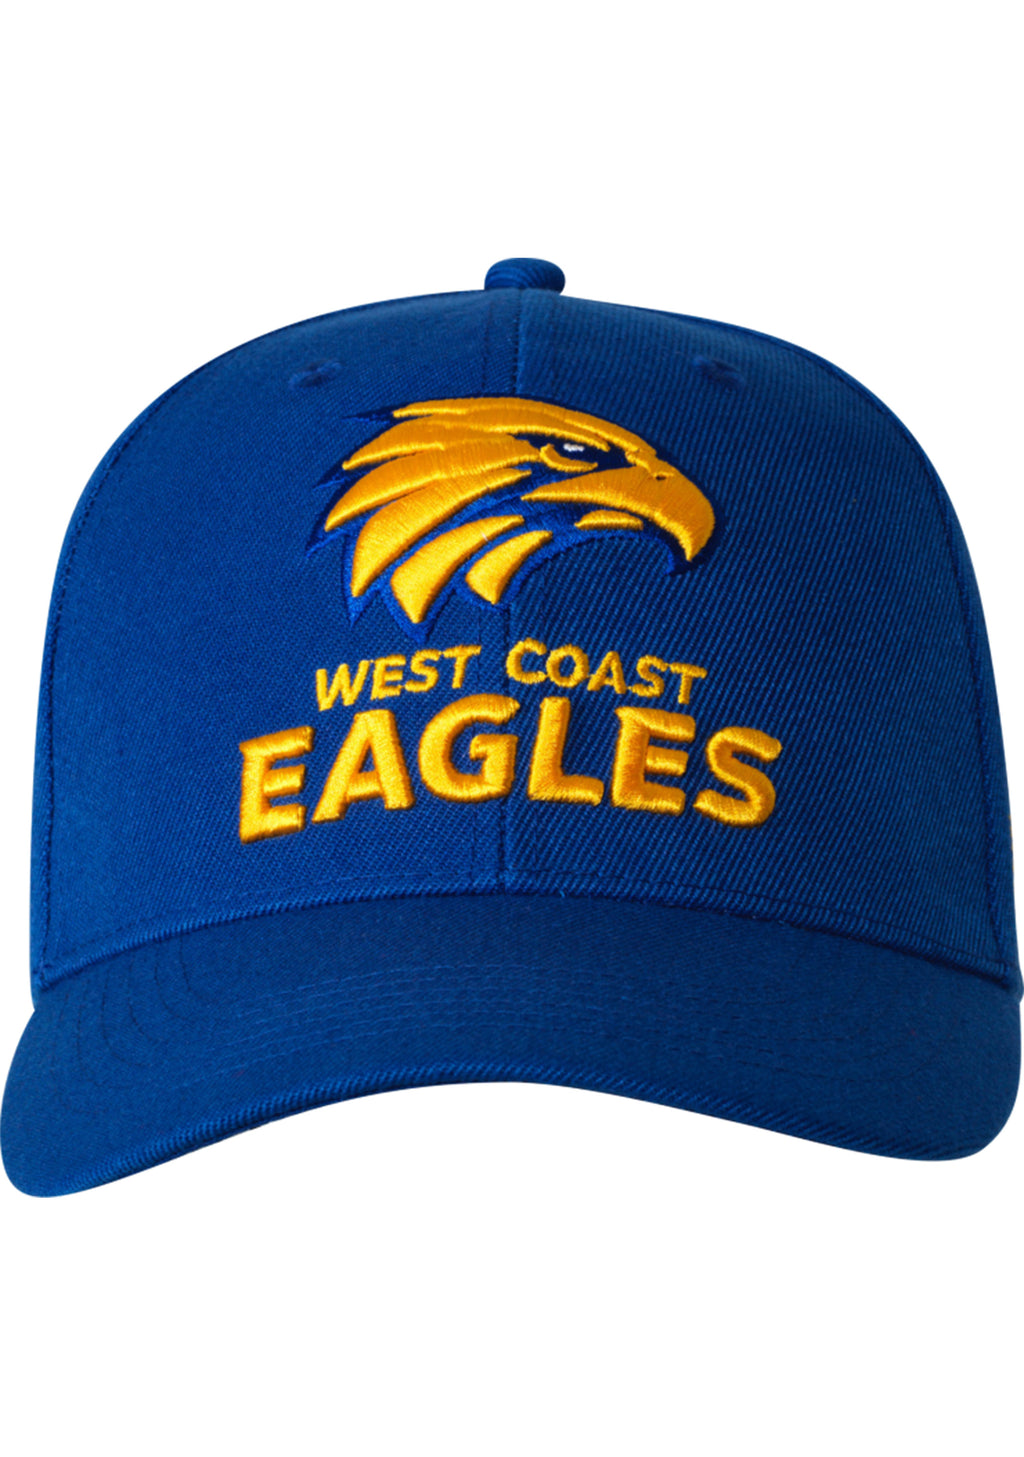 PLAYCORP WEST COAST EAGLES STAPLE CAP ADULTS <BR> AF8527